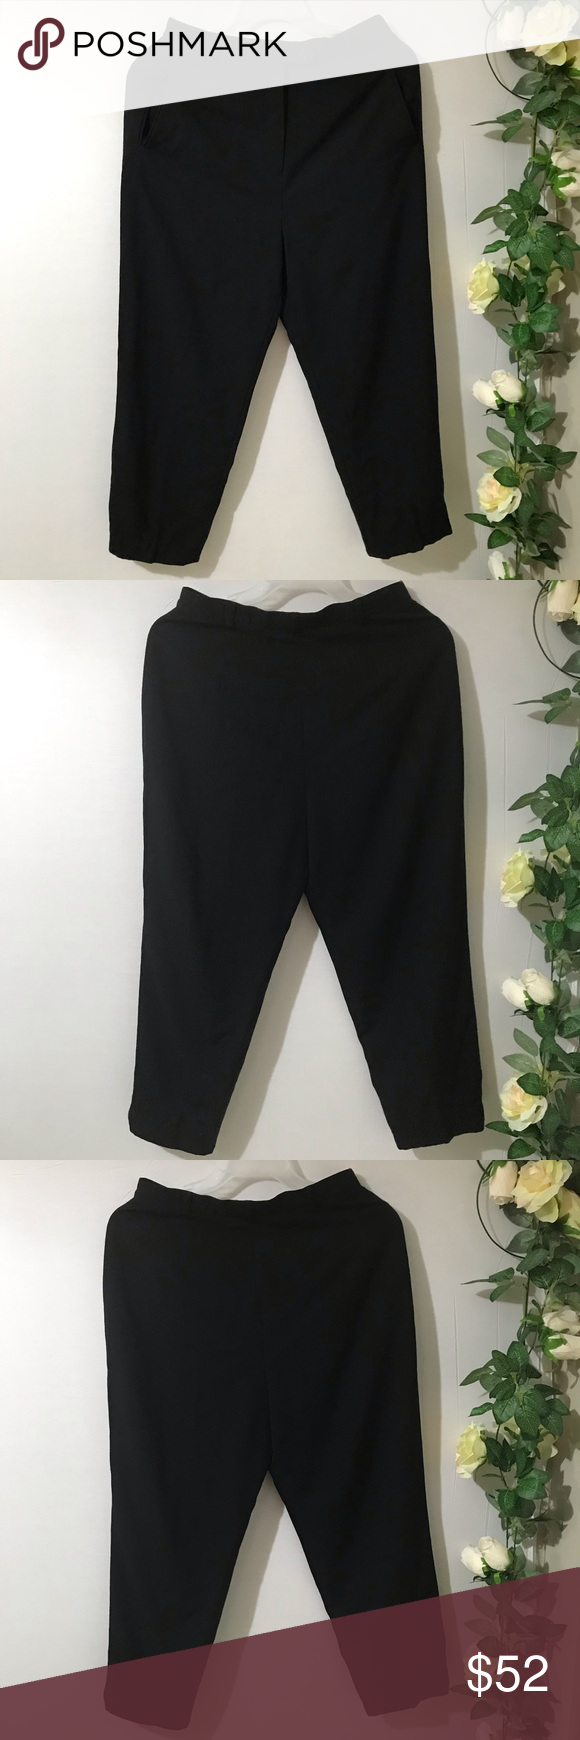 Austin Reed Wool Trouser Pants Clothes Design Trouser Pants Austin Reed